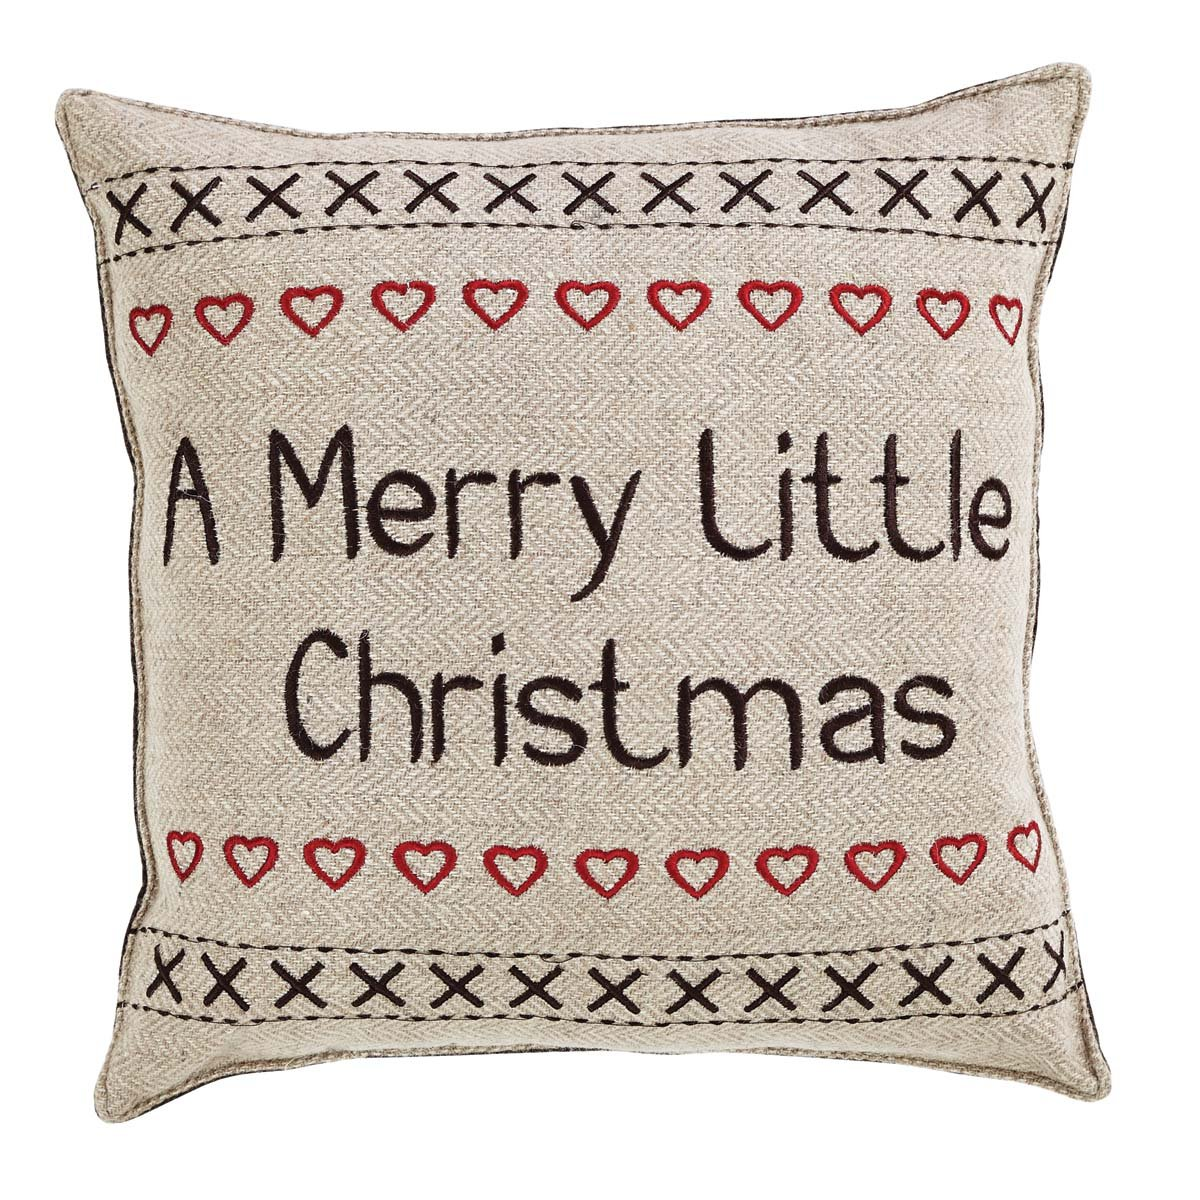 Merry Little Christmas Pillow Have Yourself A Set of 2.